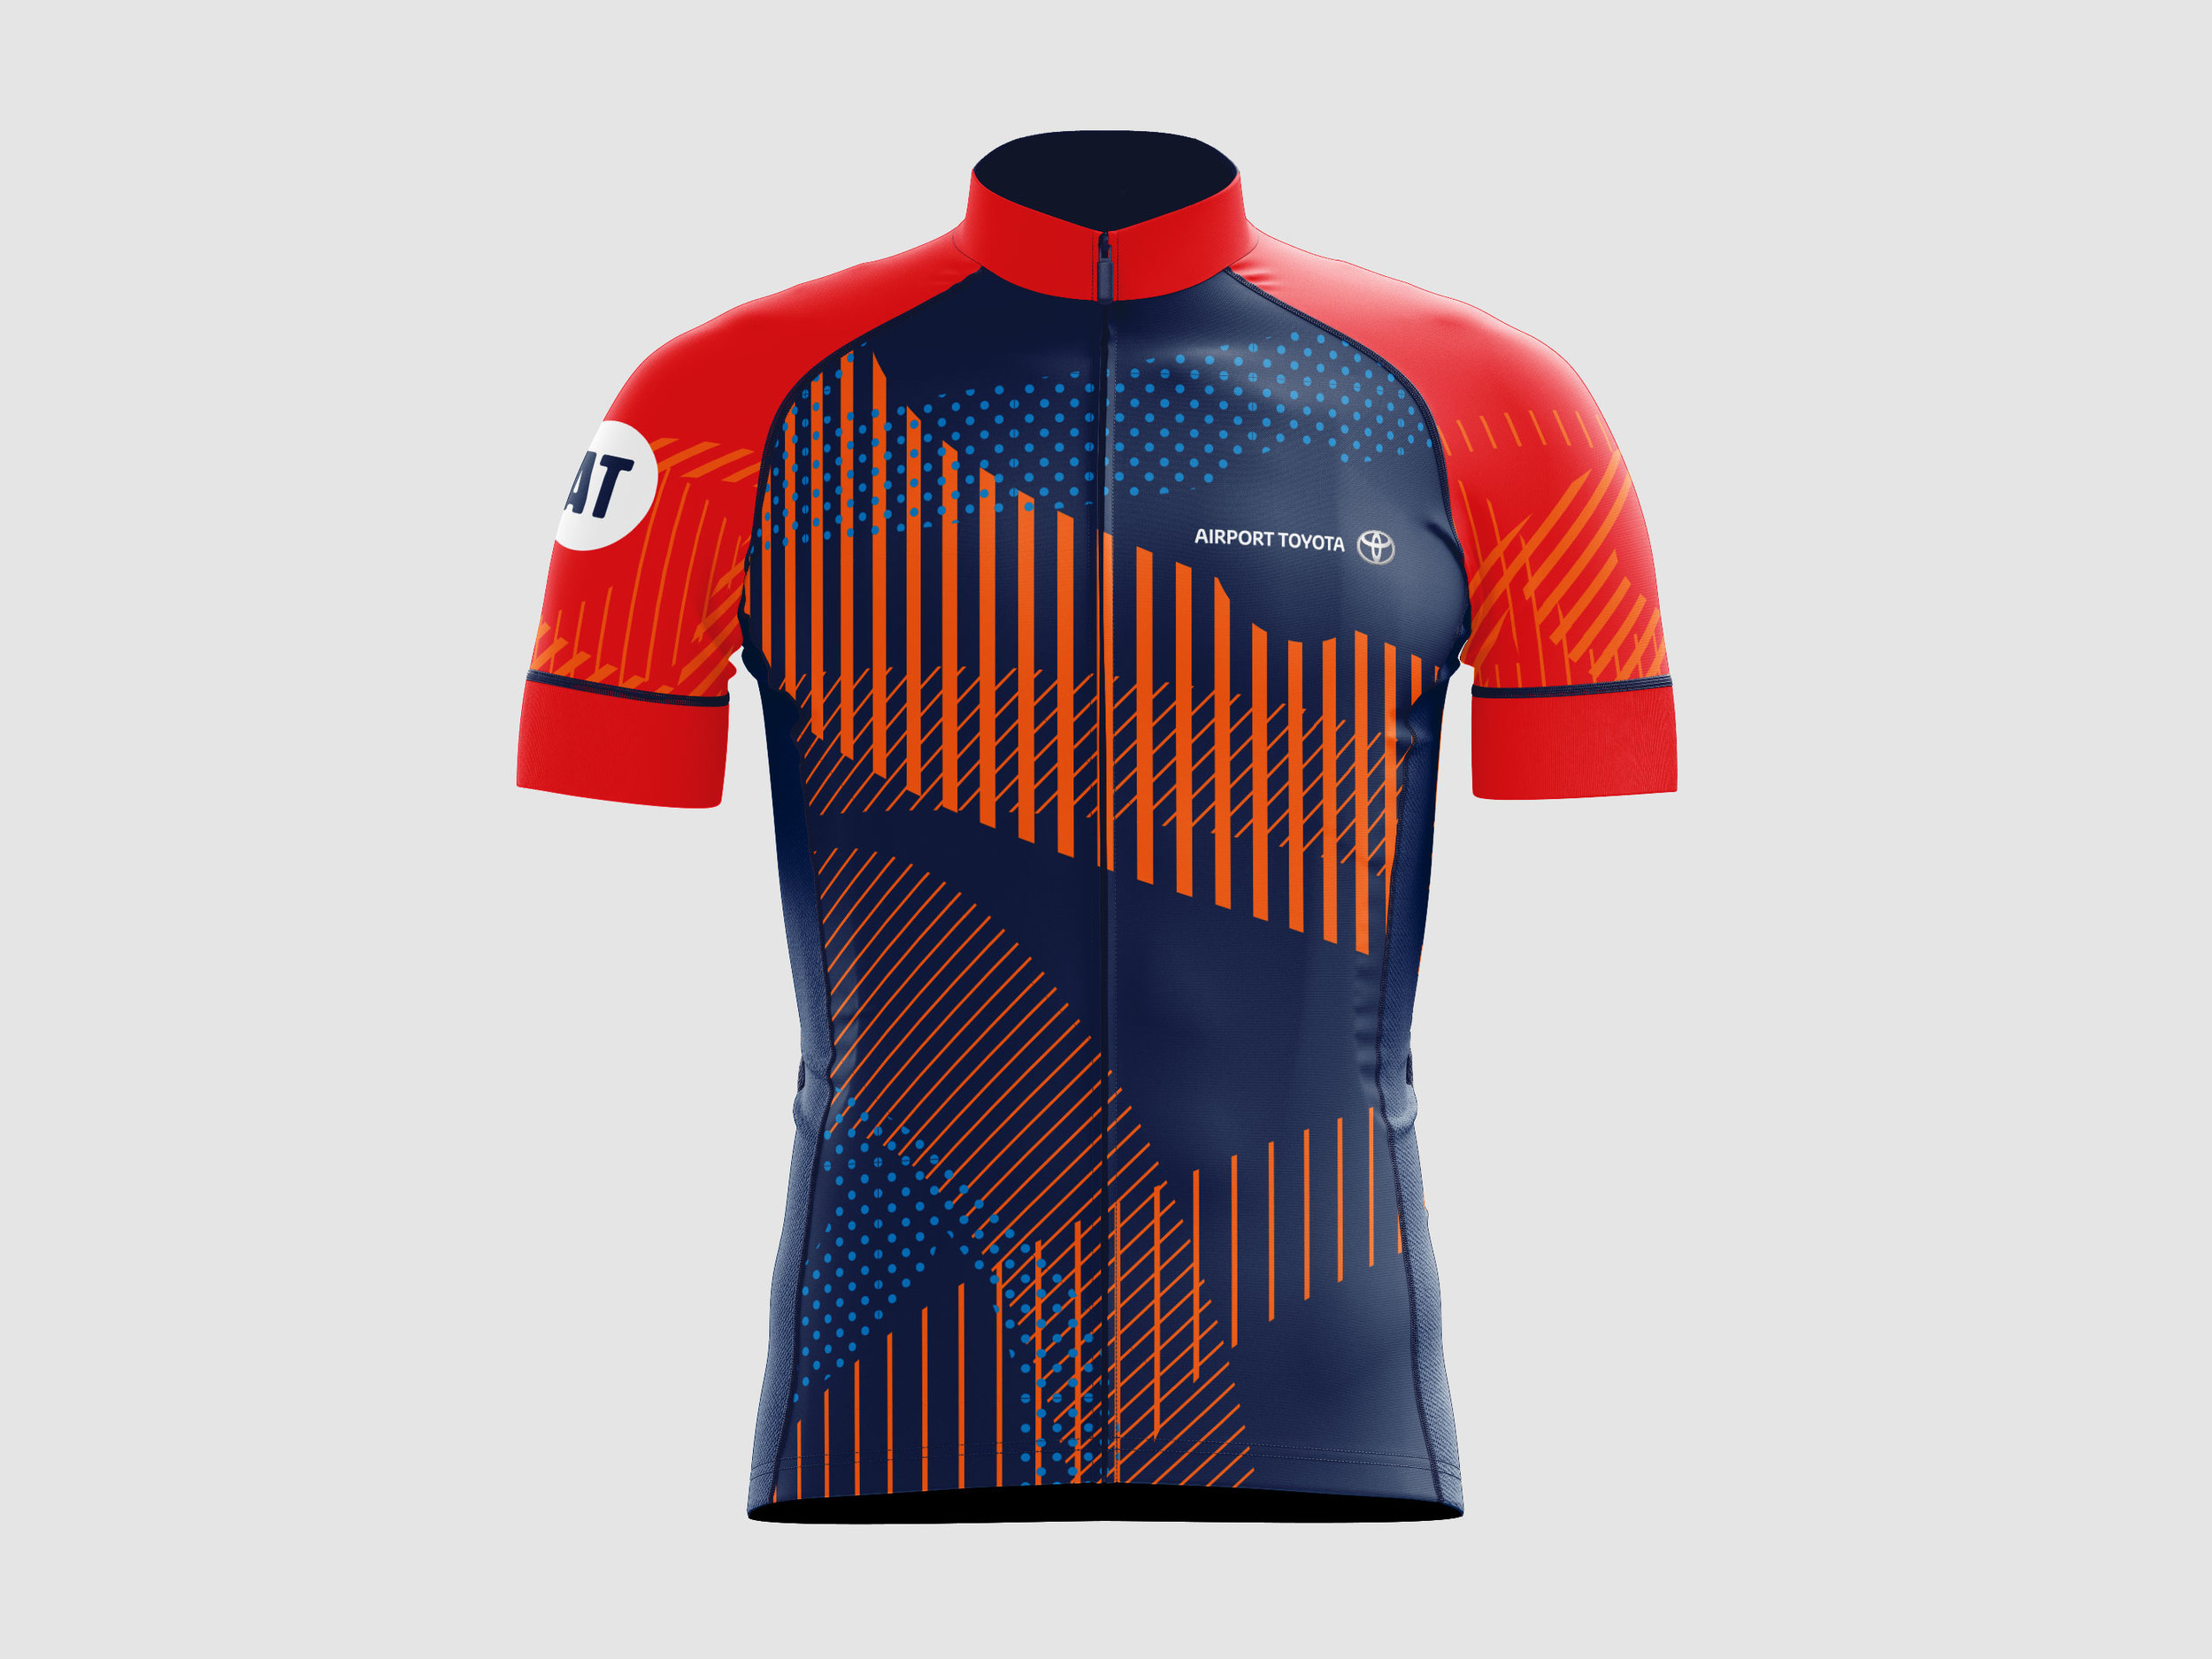 Airport Toyota Cycling Kit manufactured by Babici